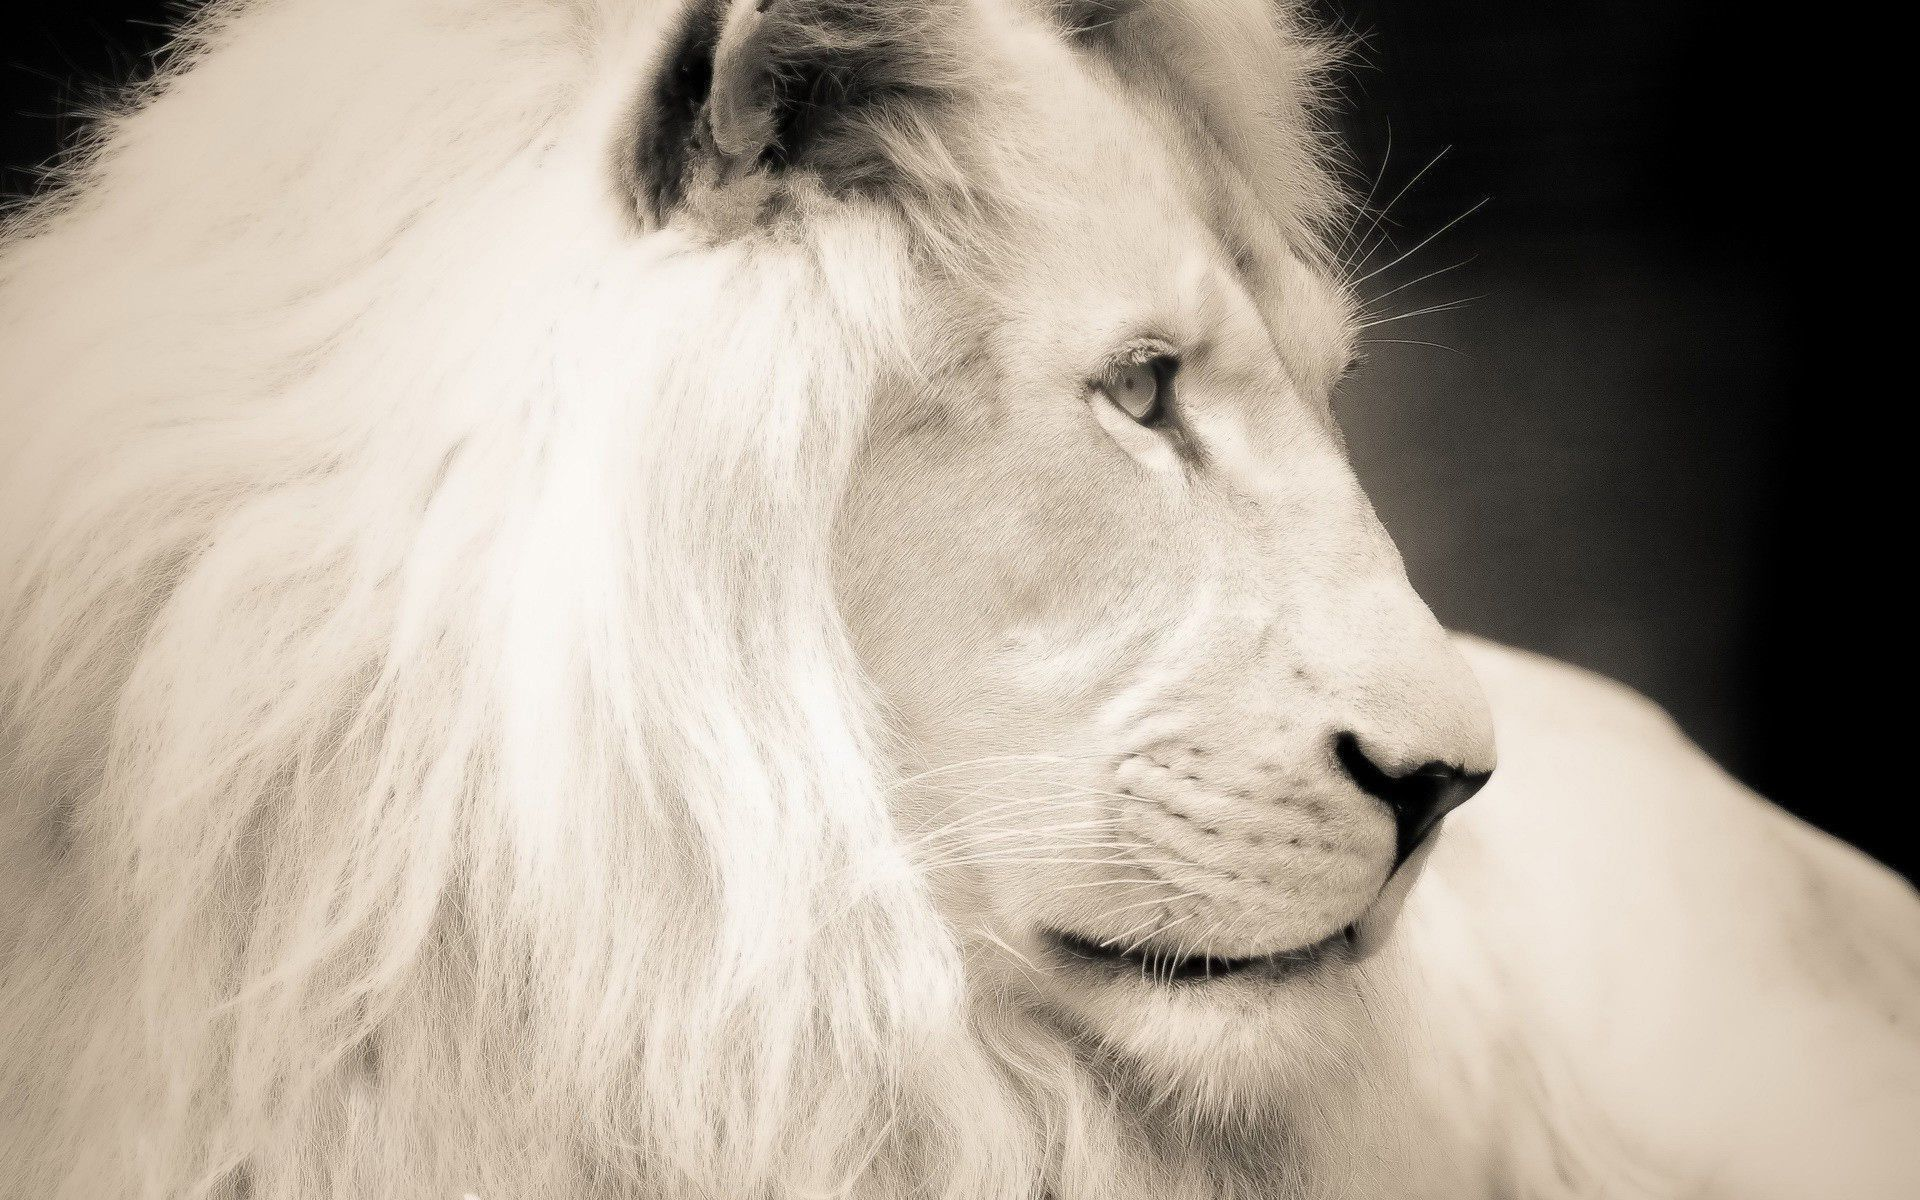 White Lion Collection See All Wallpapers Wallpapers Background Animals White Lion Images Lion Wallpaper Lion Images